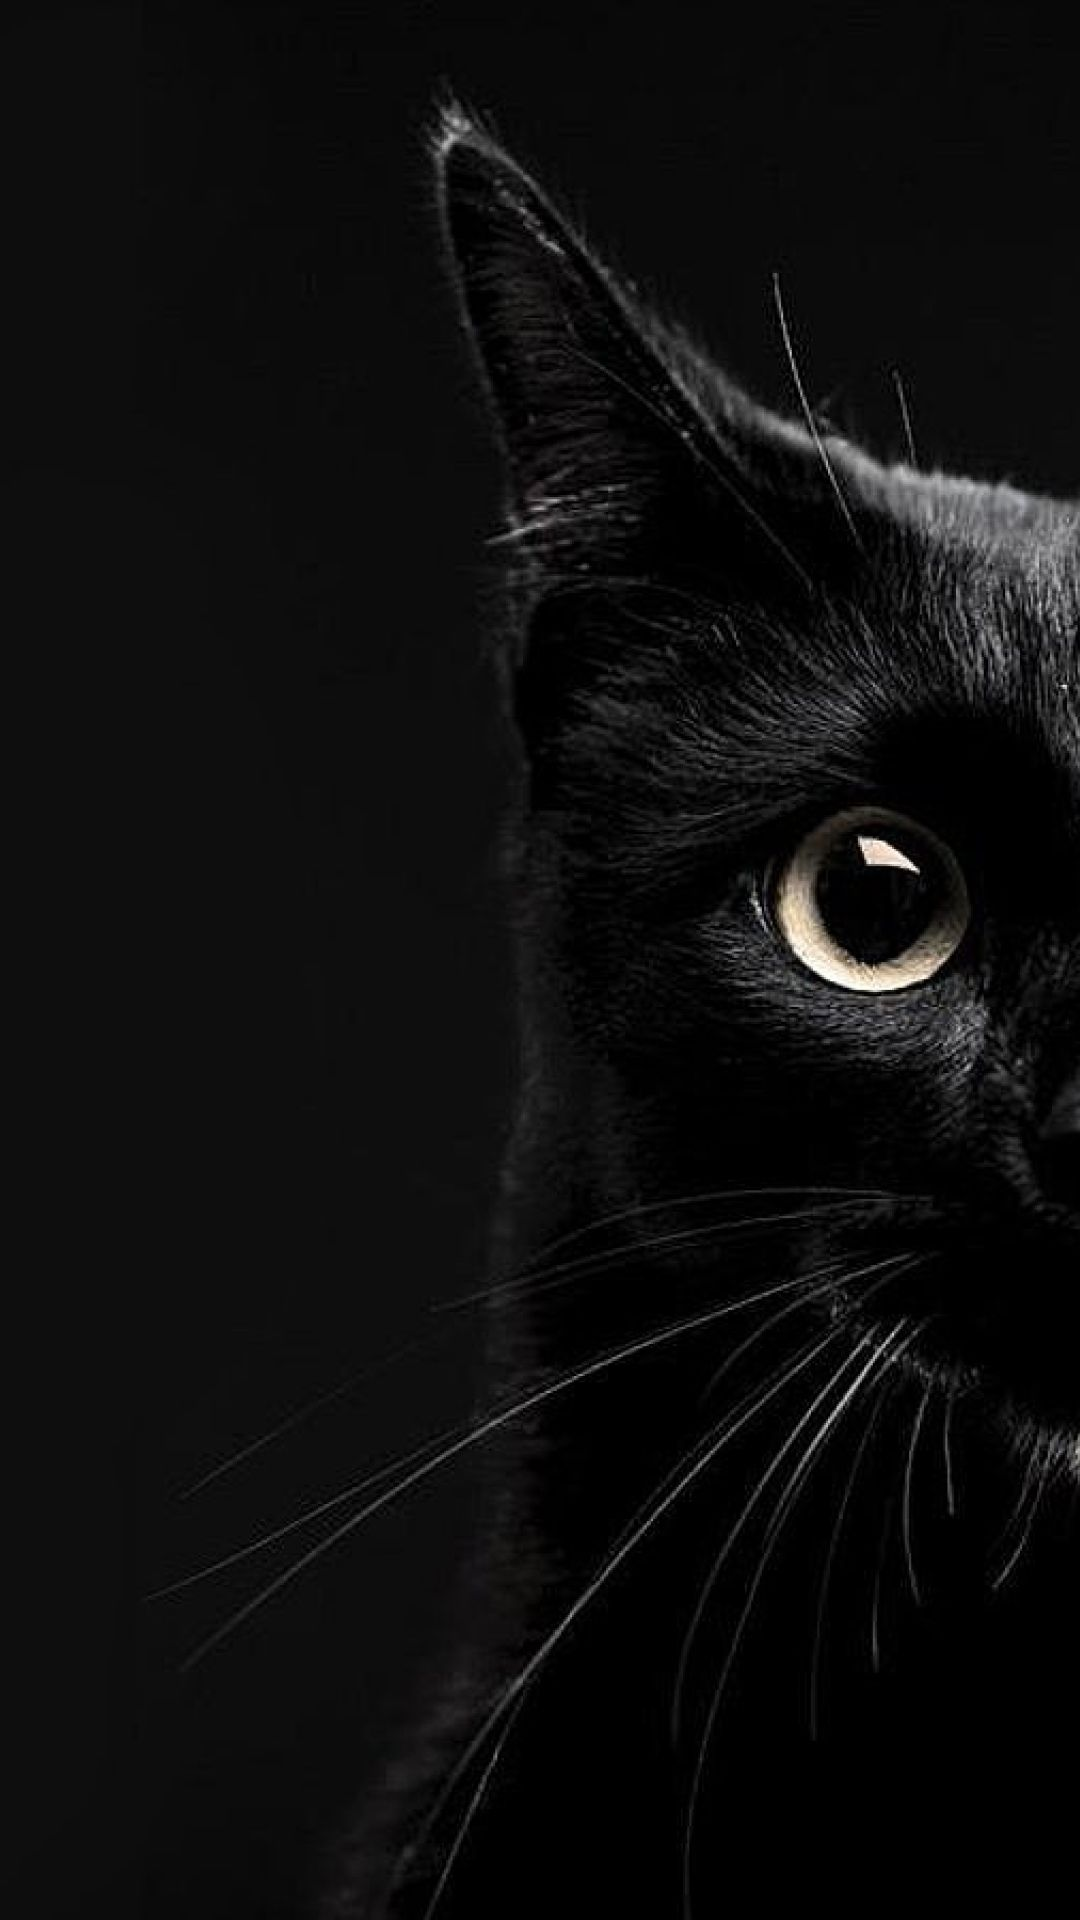 cat wallpapers backgrounds wallpaperaccess